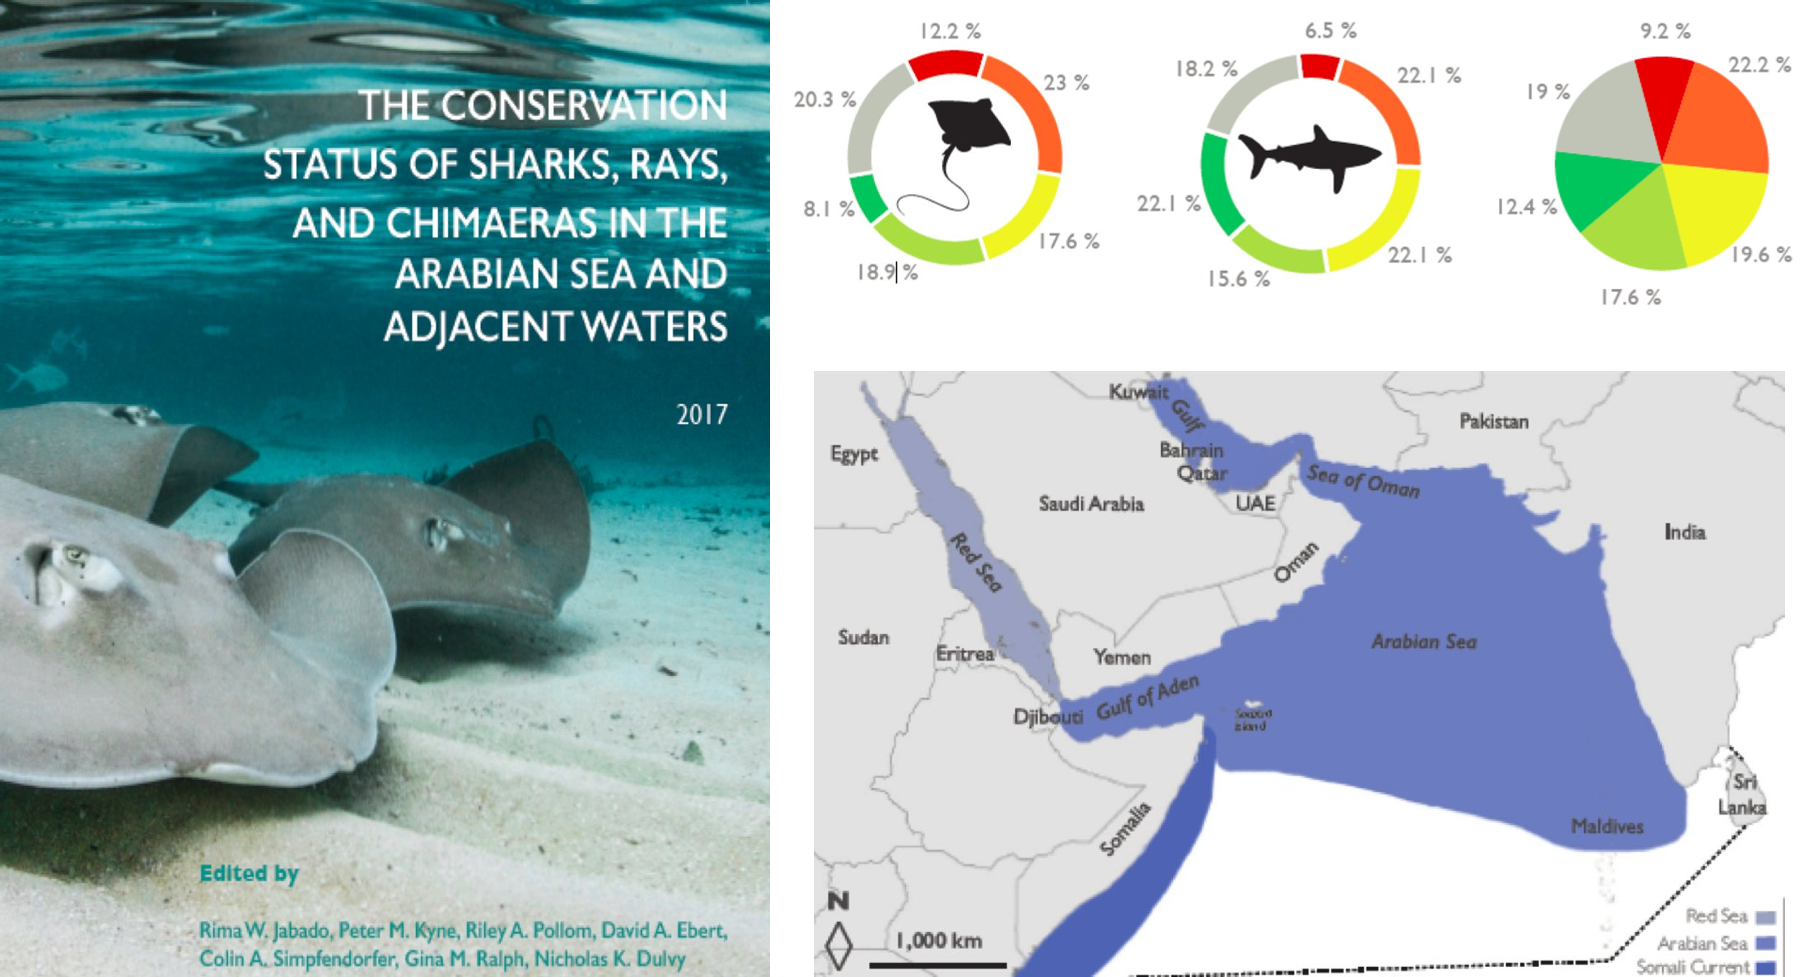 IUCN Red List assessment for Sharks, Rays, and Chimaeras of the Arabian Sea and adjacent Waters